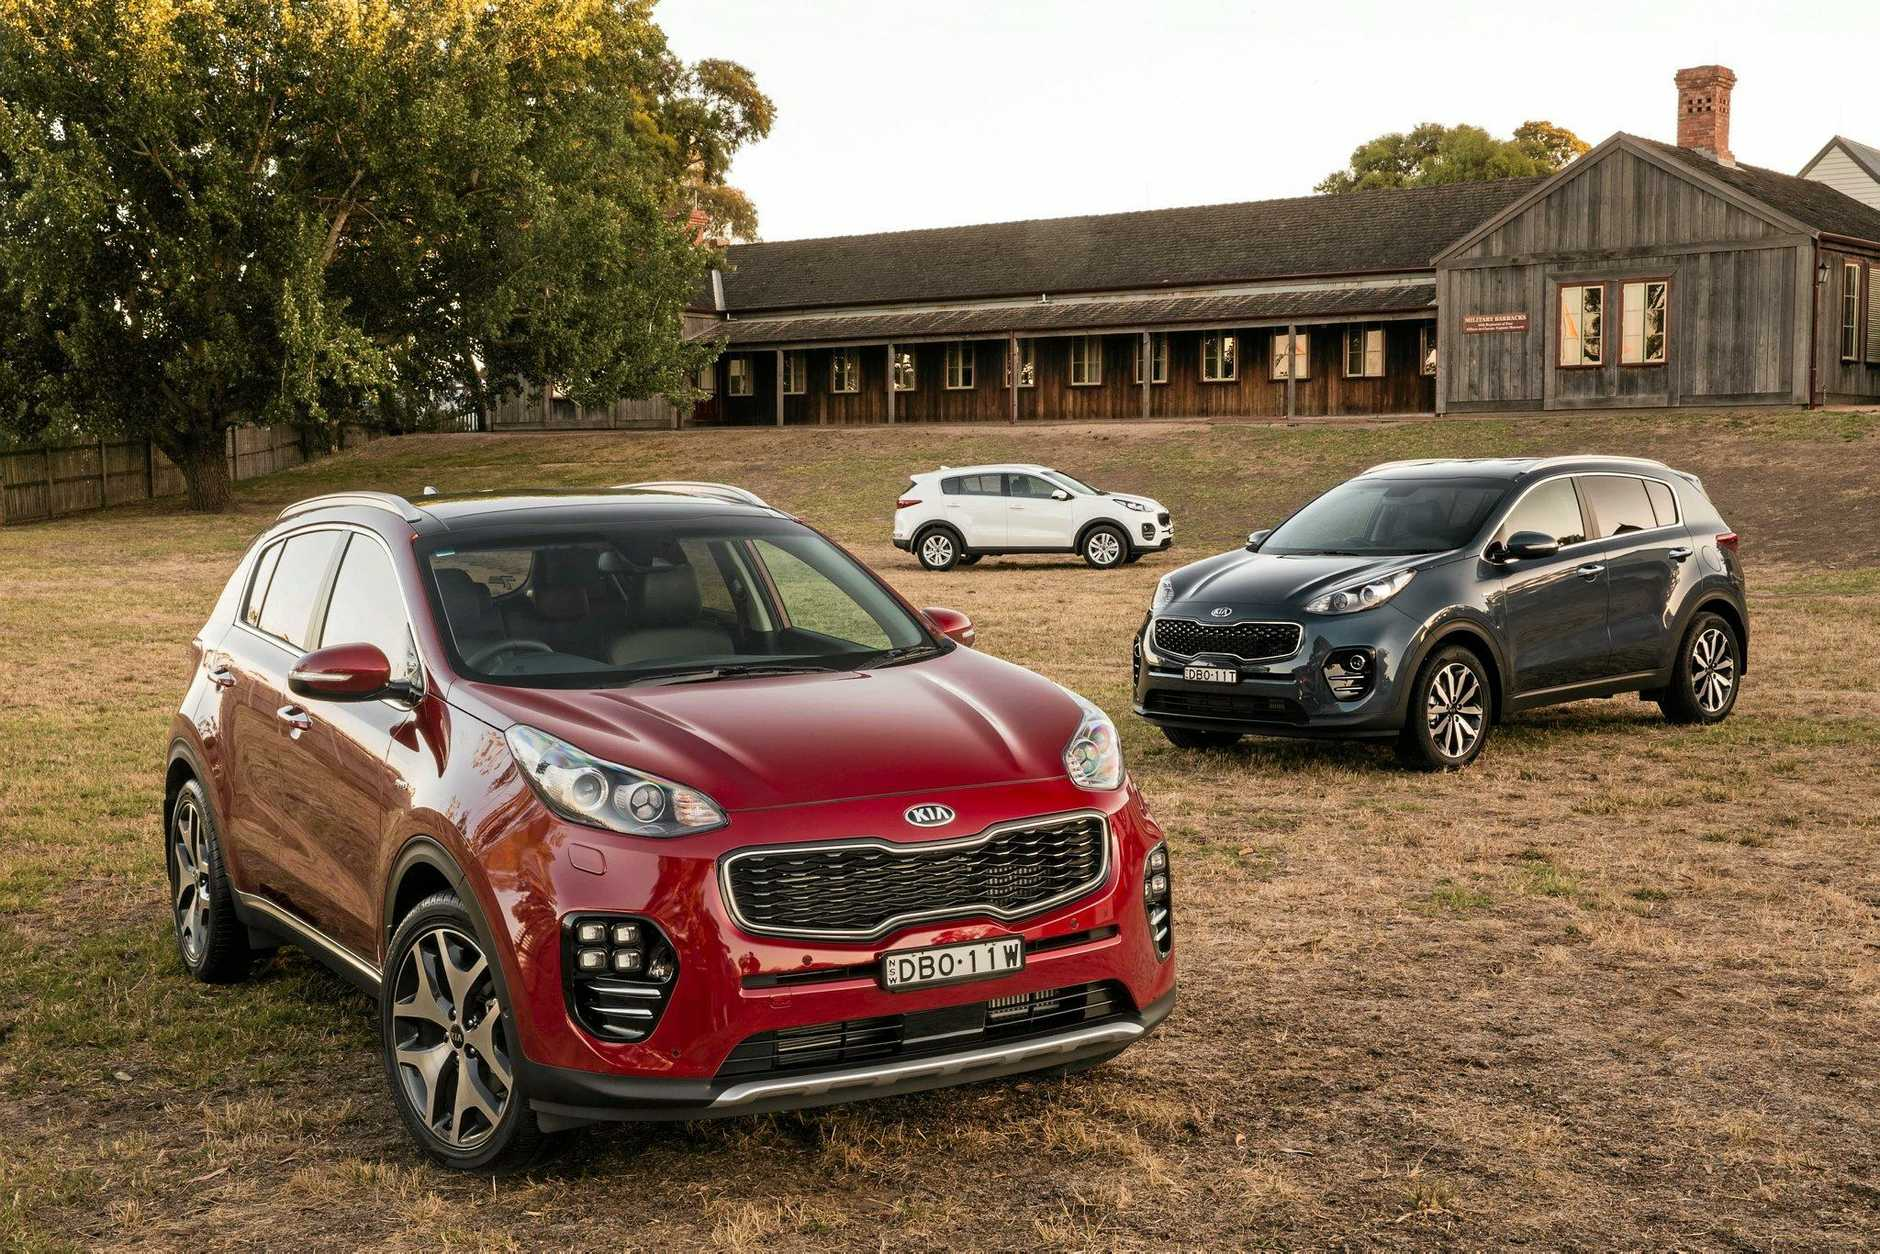 2016 Kia Sportage group. Platinum (front), SLi (right) and Si (middle).